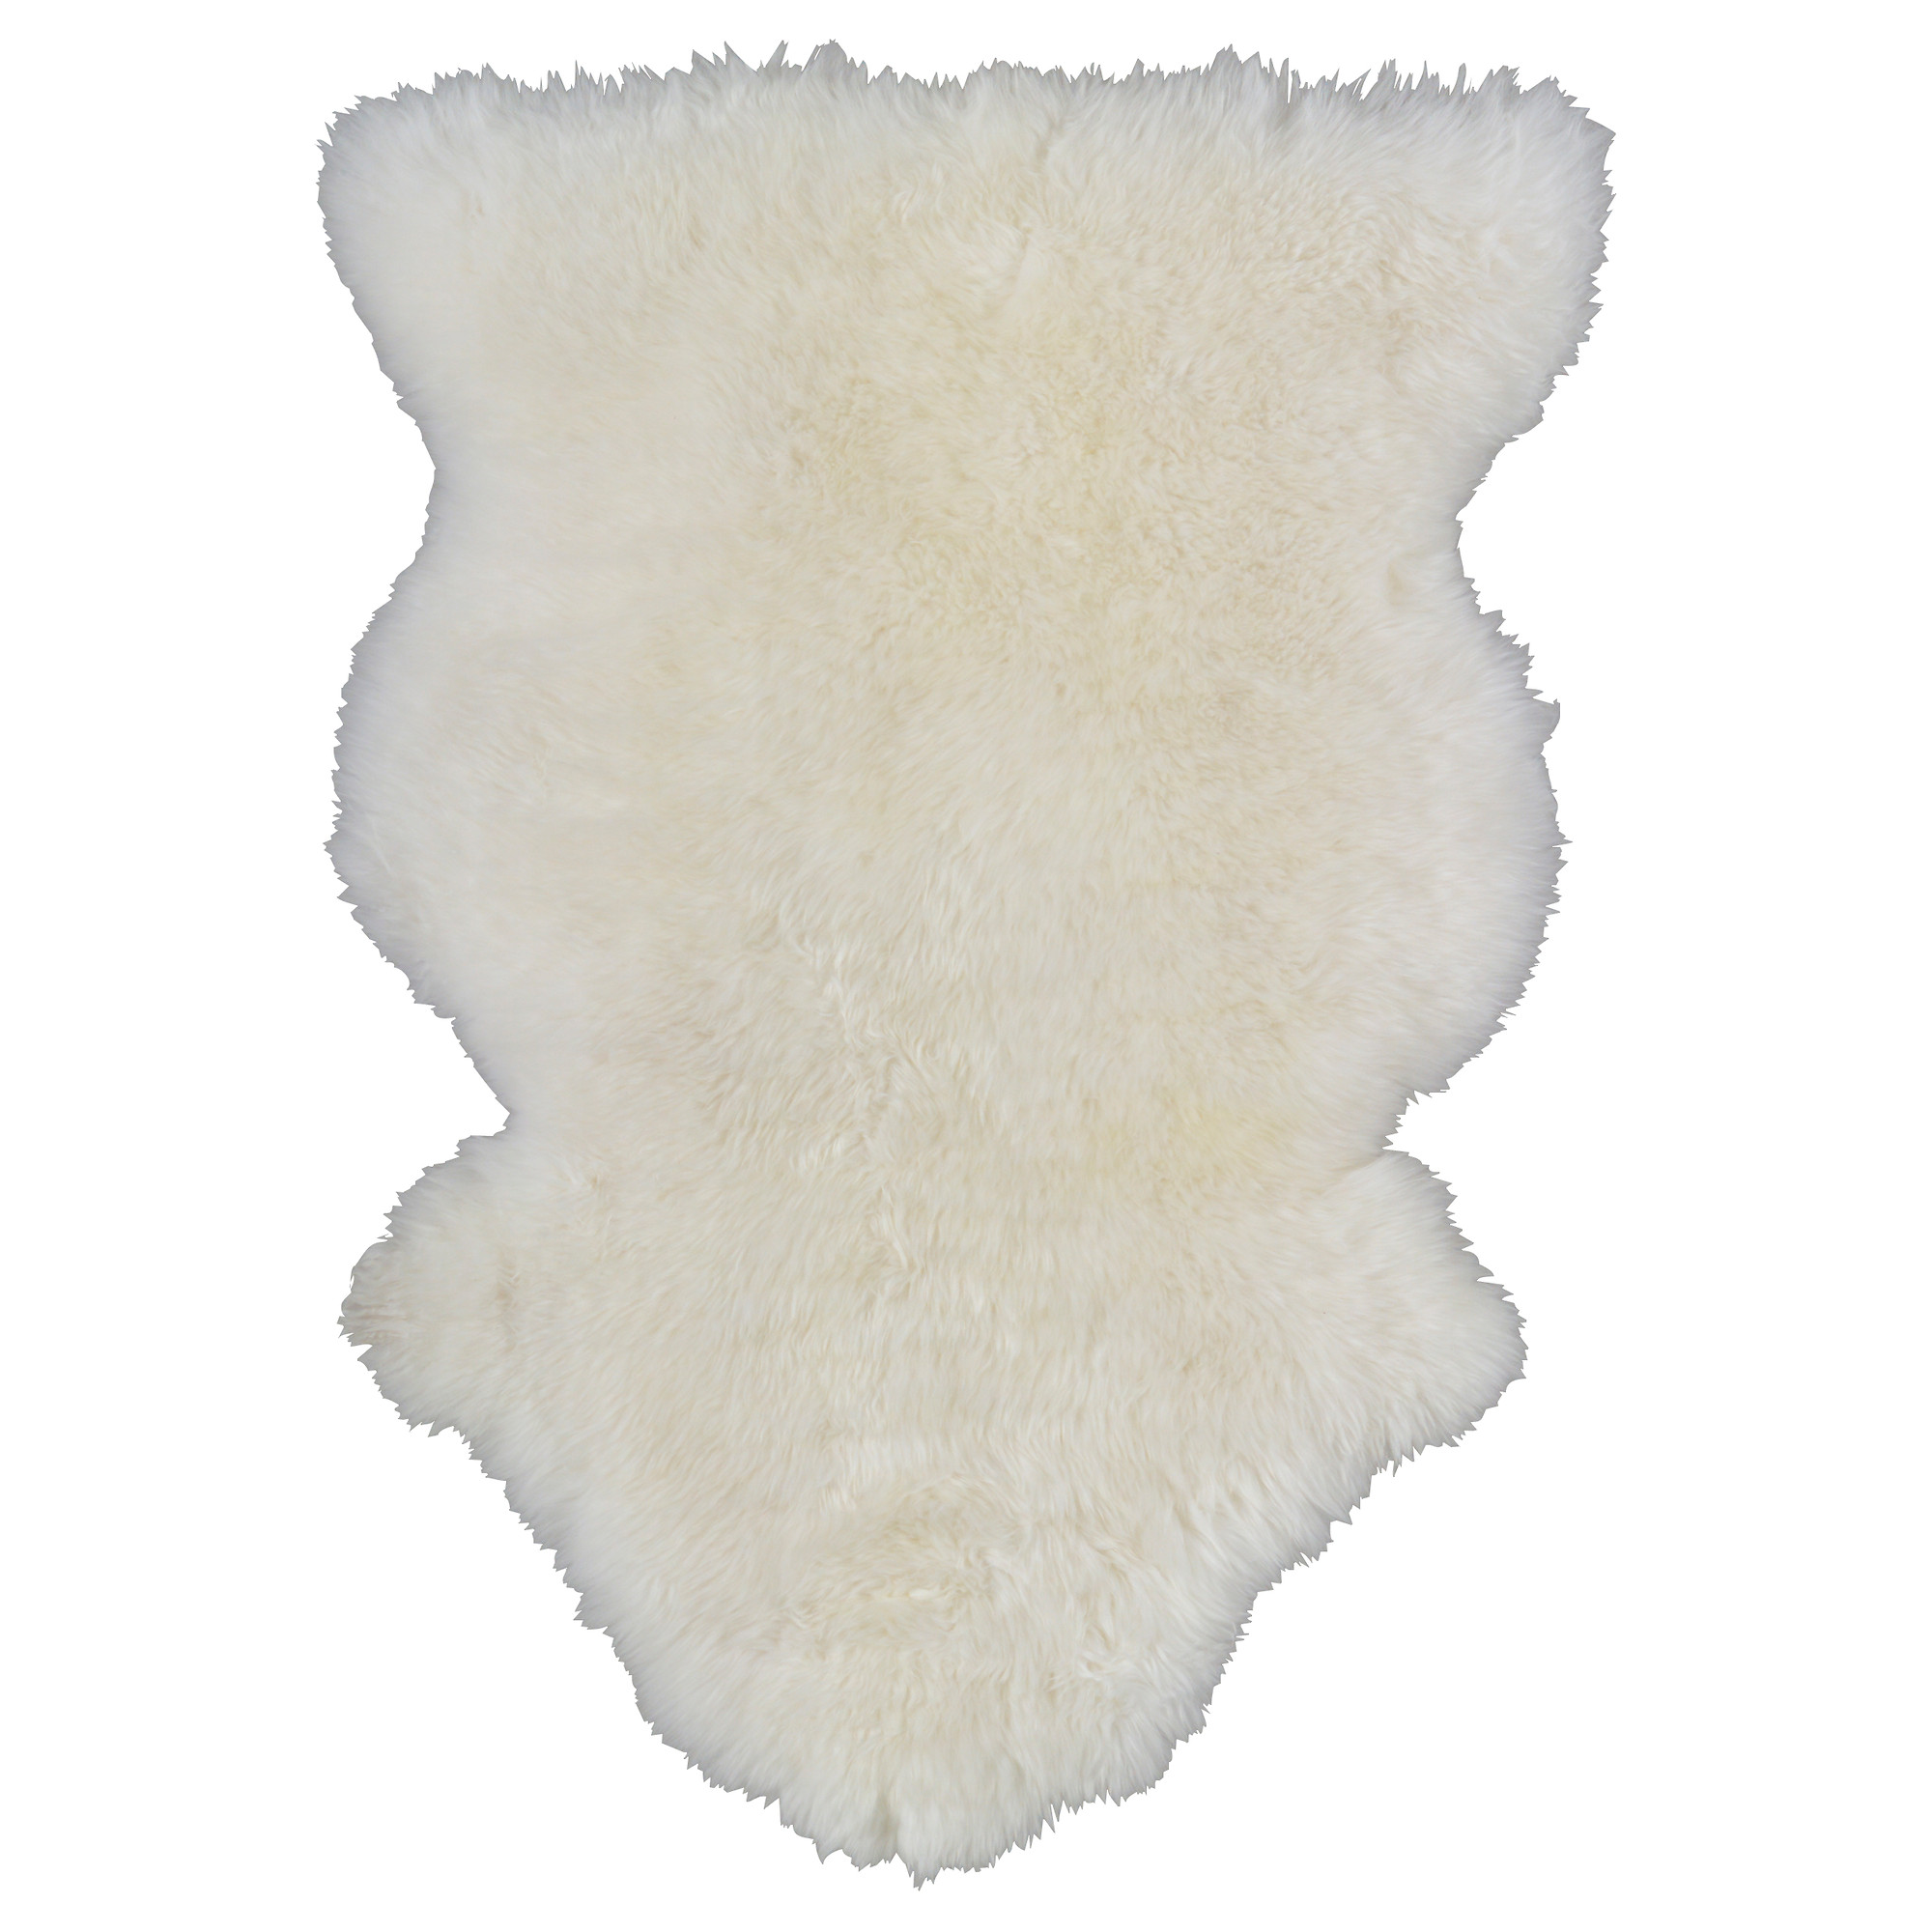 Sheep Skin Rugs | Small Faux Fur Rug | Fur Rug